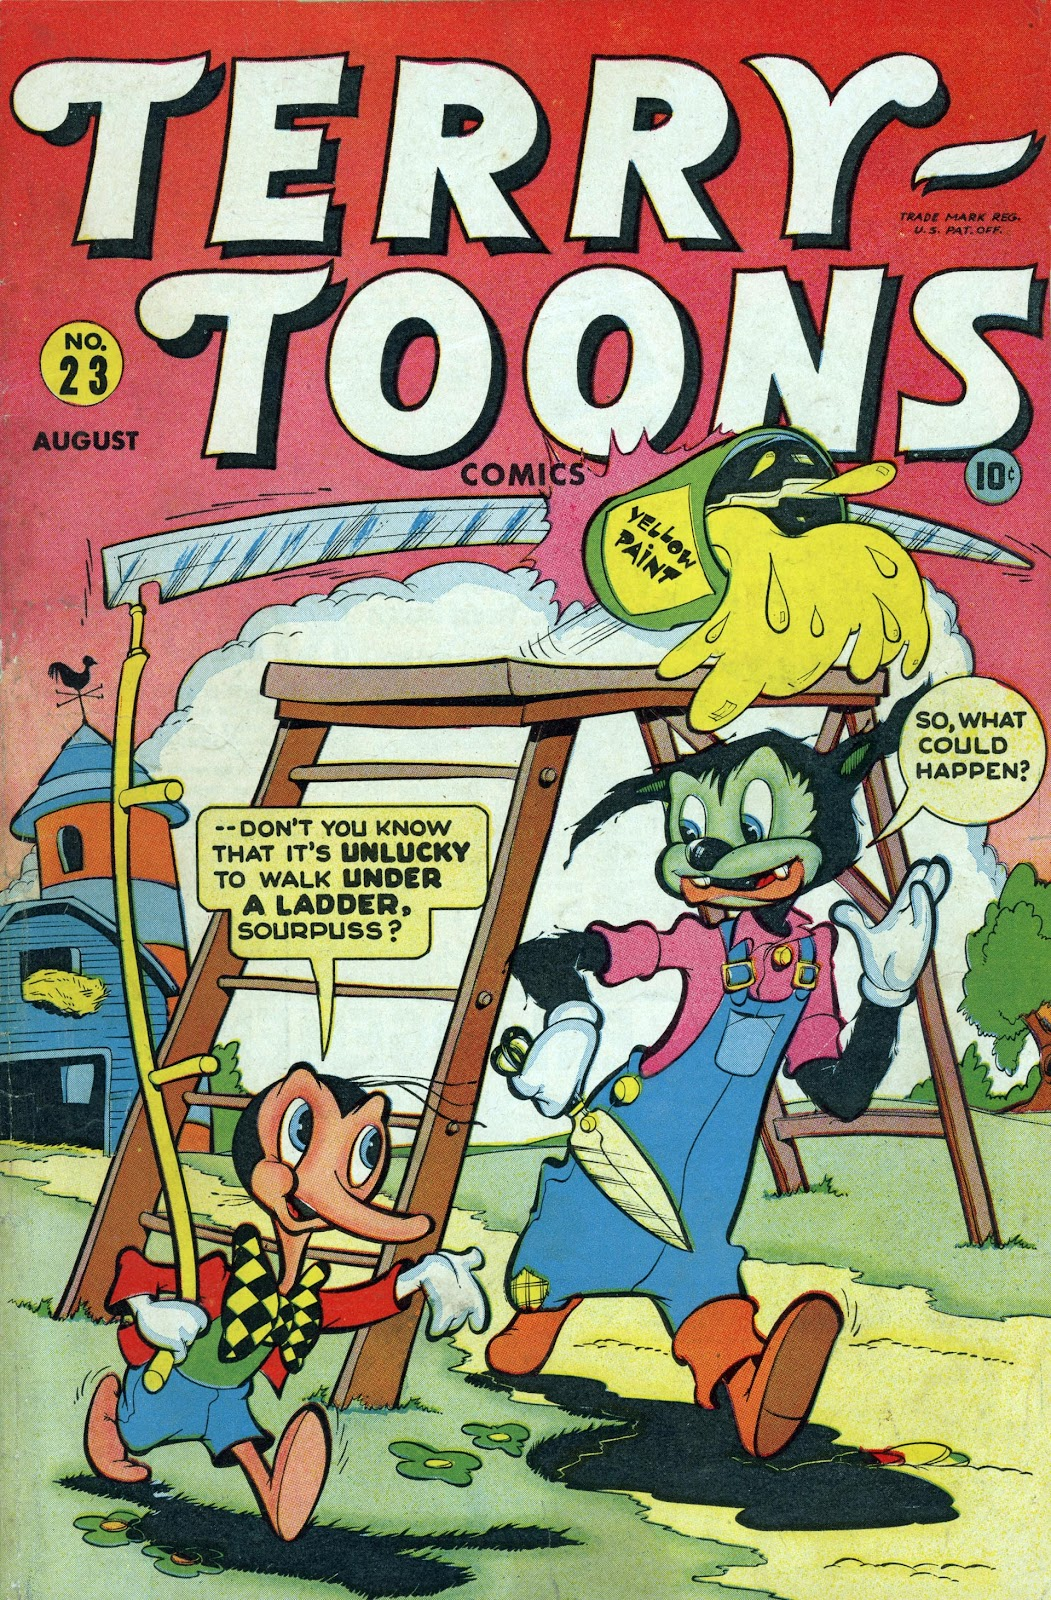 Terry-Toons Comics issue 23 - Page 1